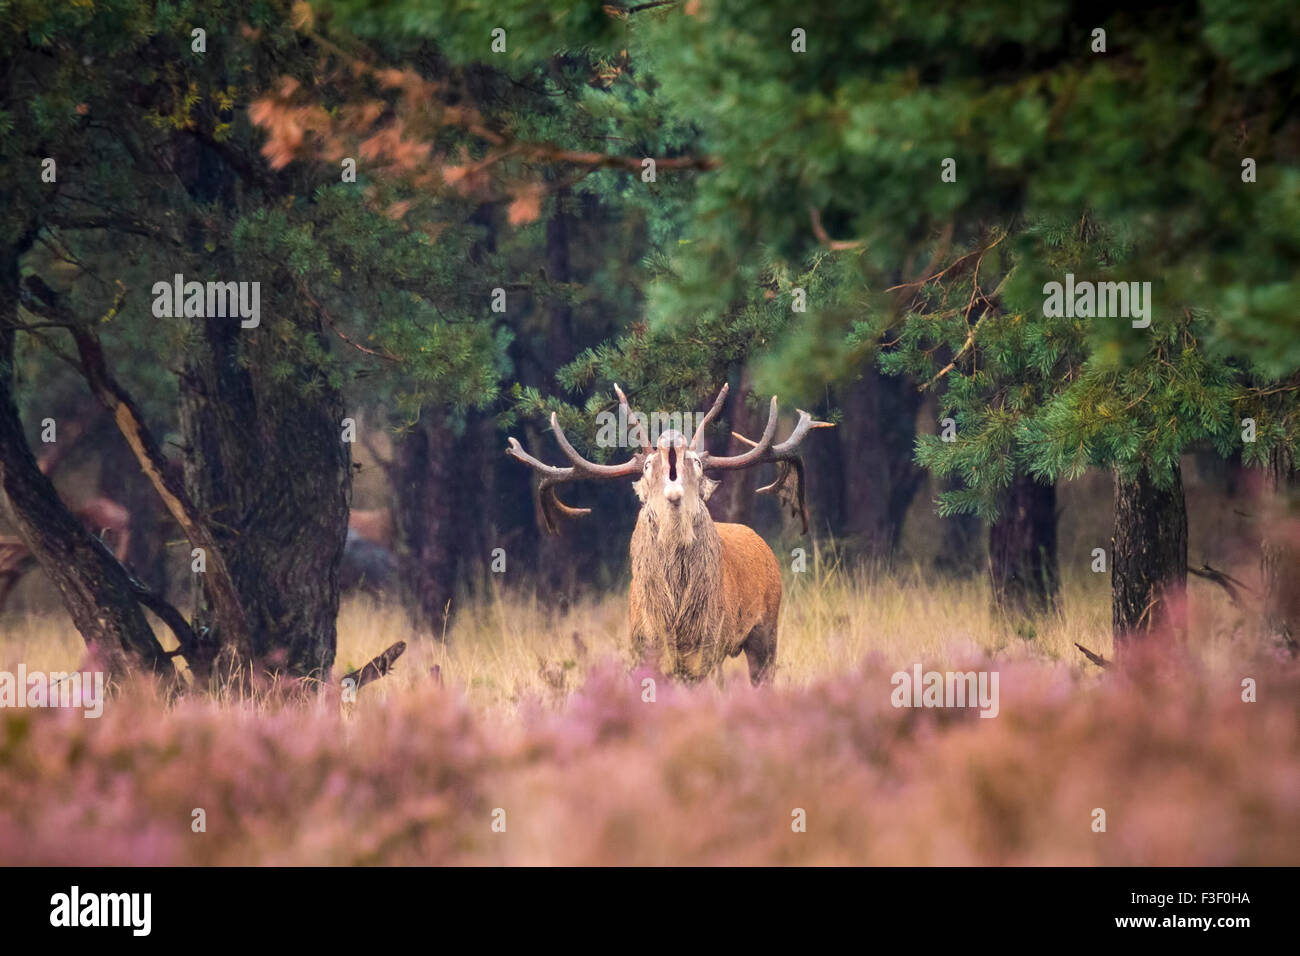 Red deer male, cervus elaphus, rutting during mating season on a field near a forest in purple heather blooming. - Stock Image